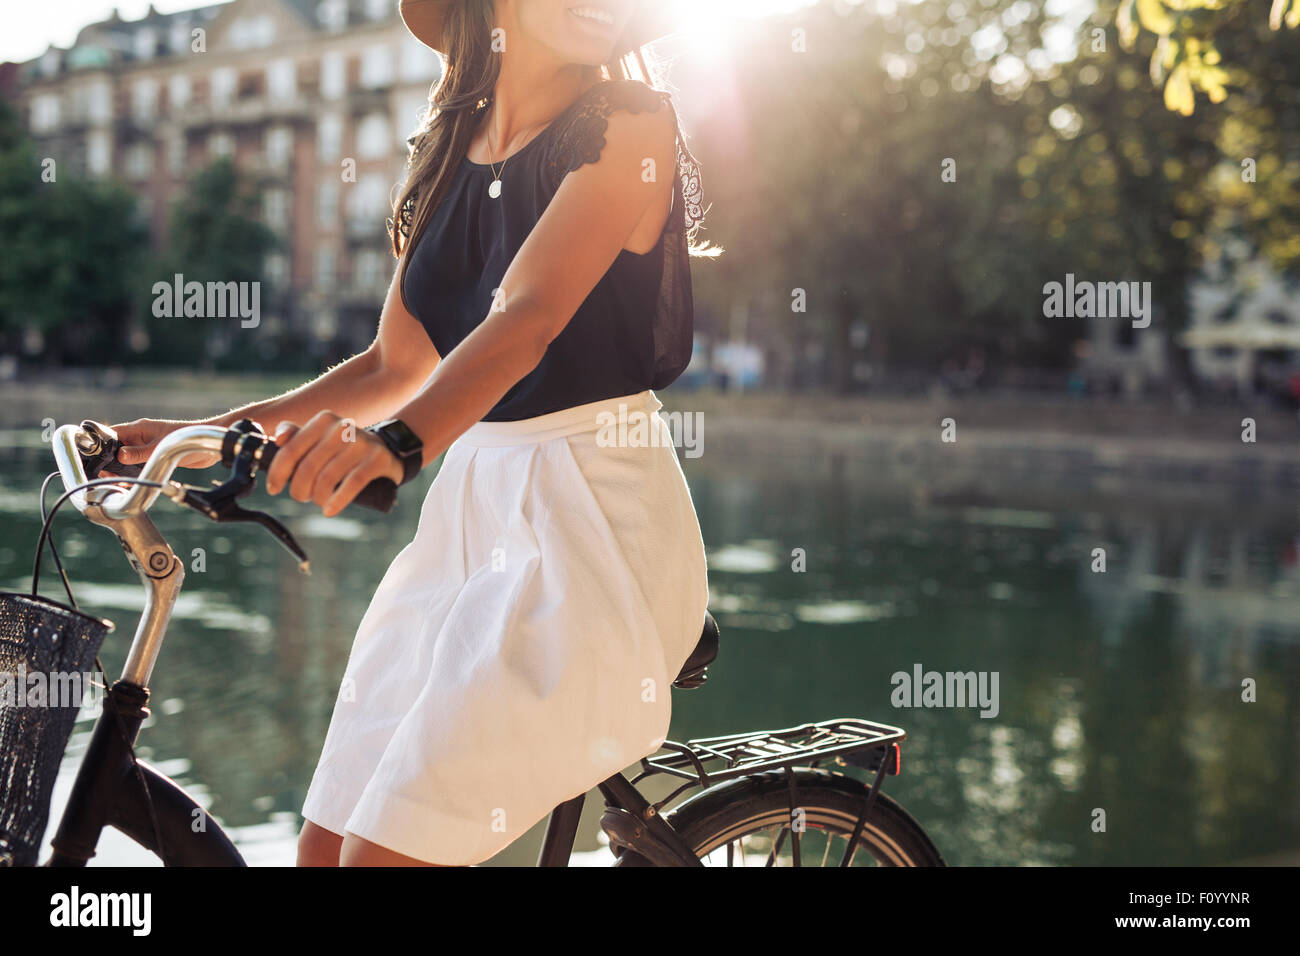 Cropped shot of young woman cycling by a pond. Woman on a summer day riding her bicycle. - Stock Image